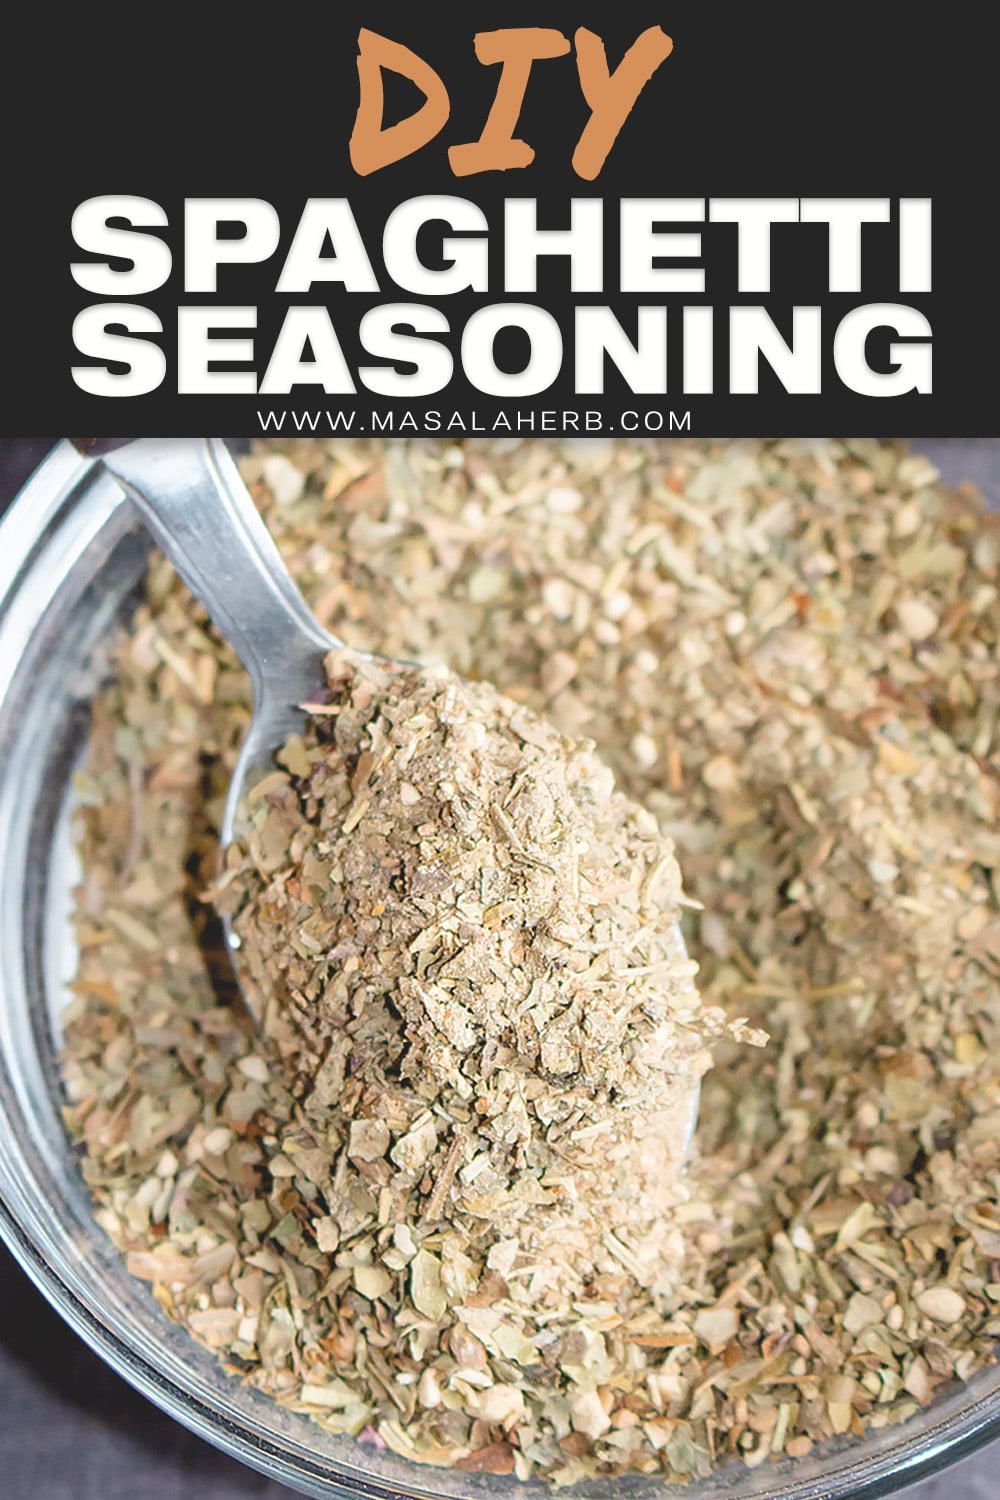 Spaghetti Seasoning Mix